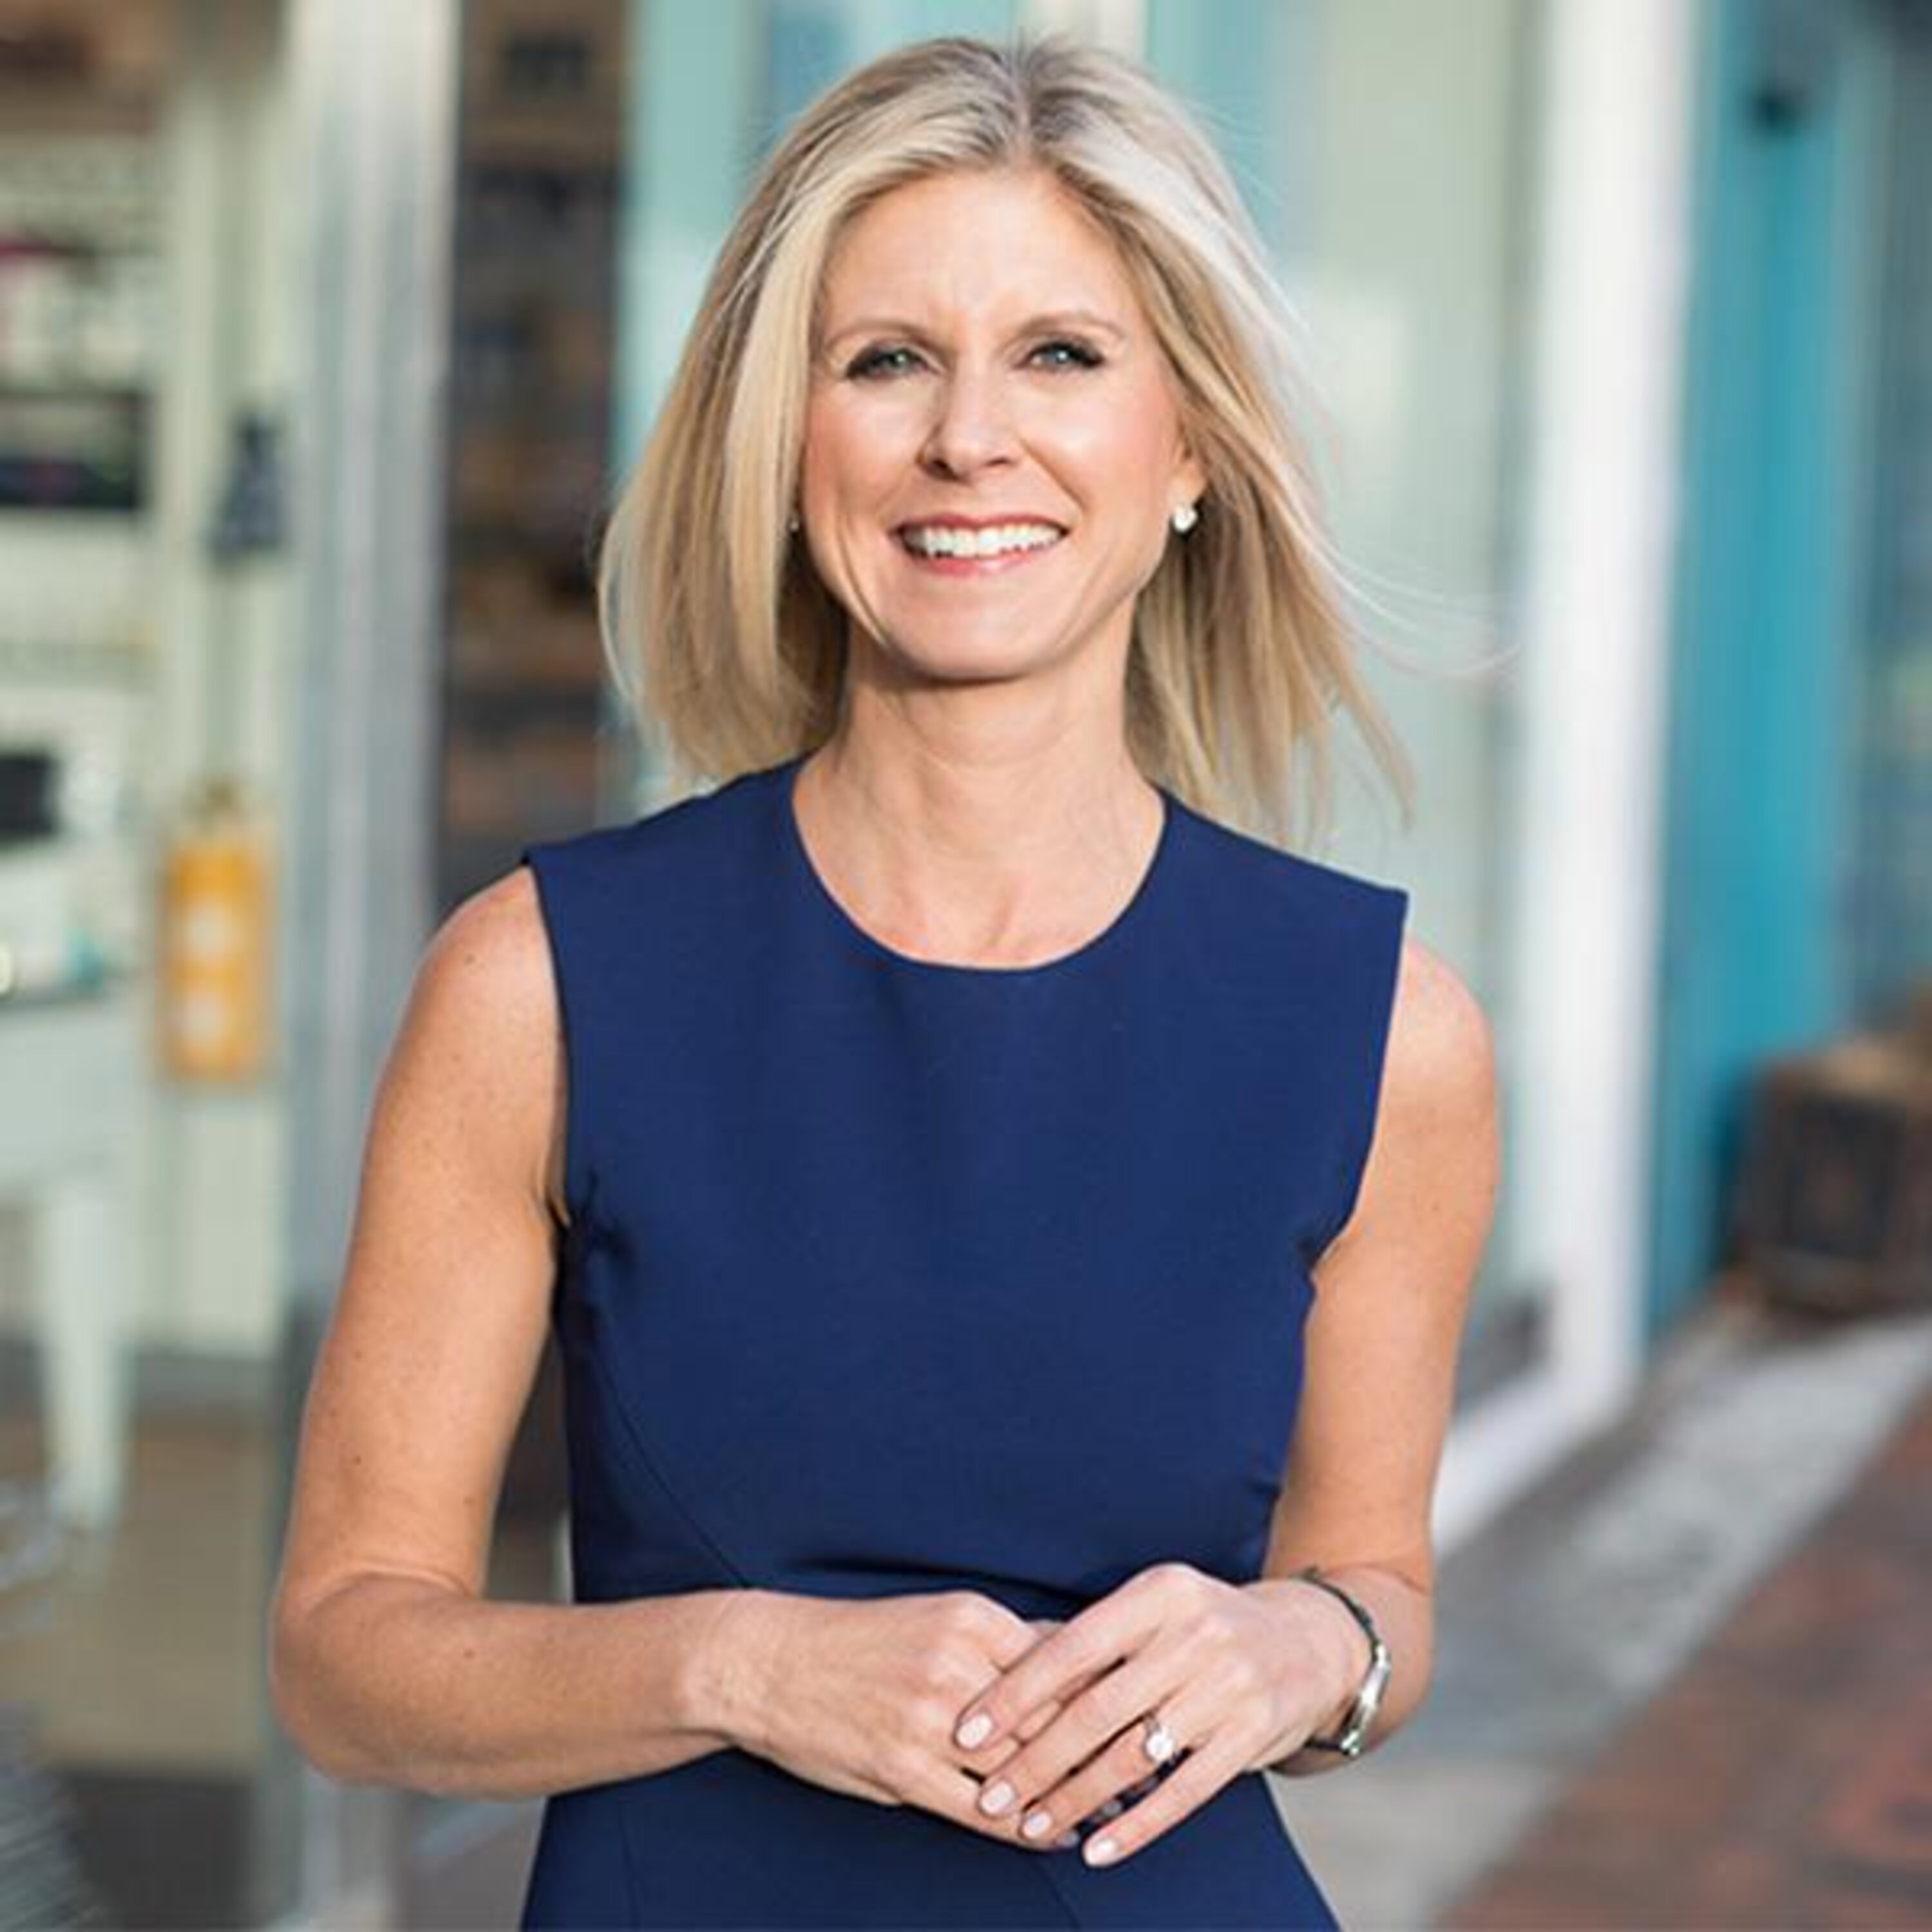 Marla Beck of Bluemercury - Empowering Ahead of the Curve